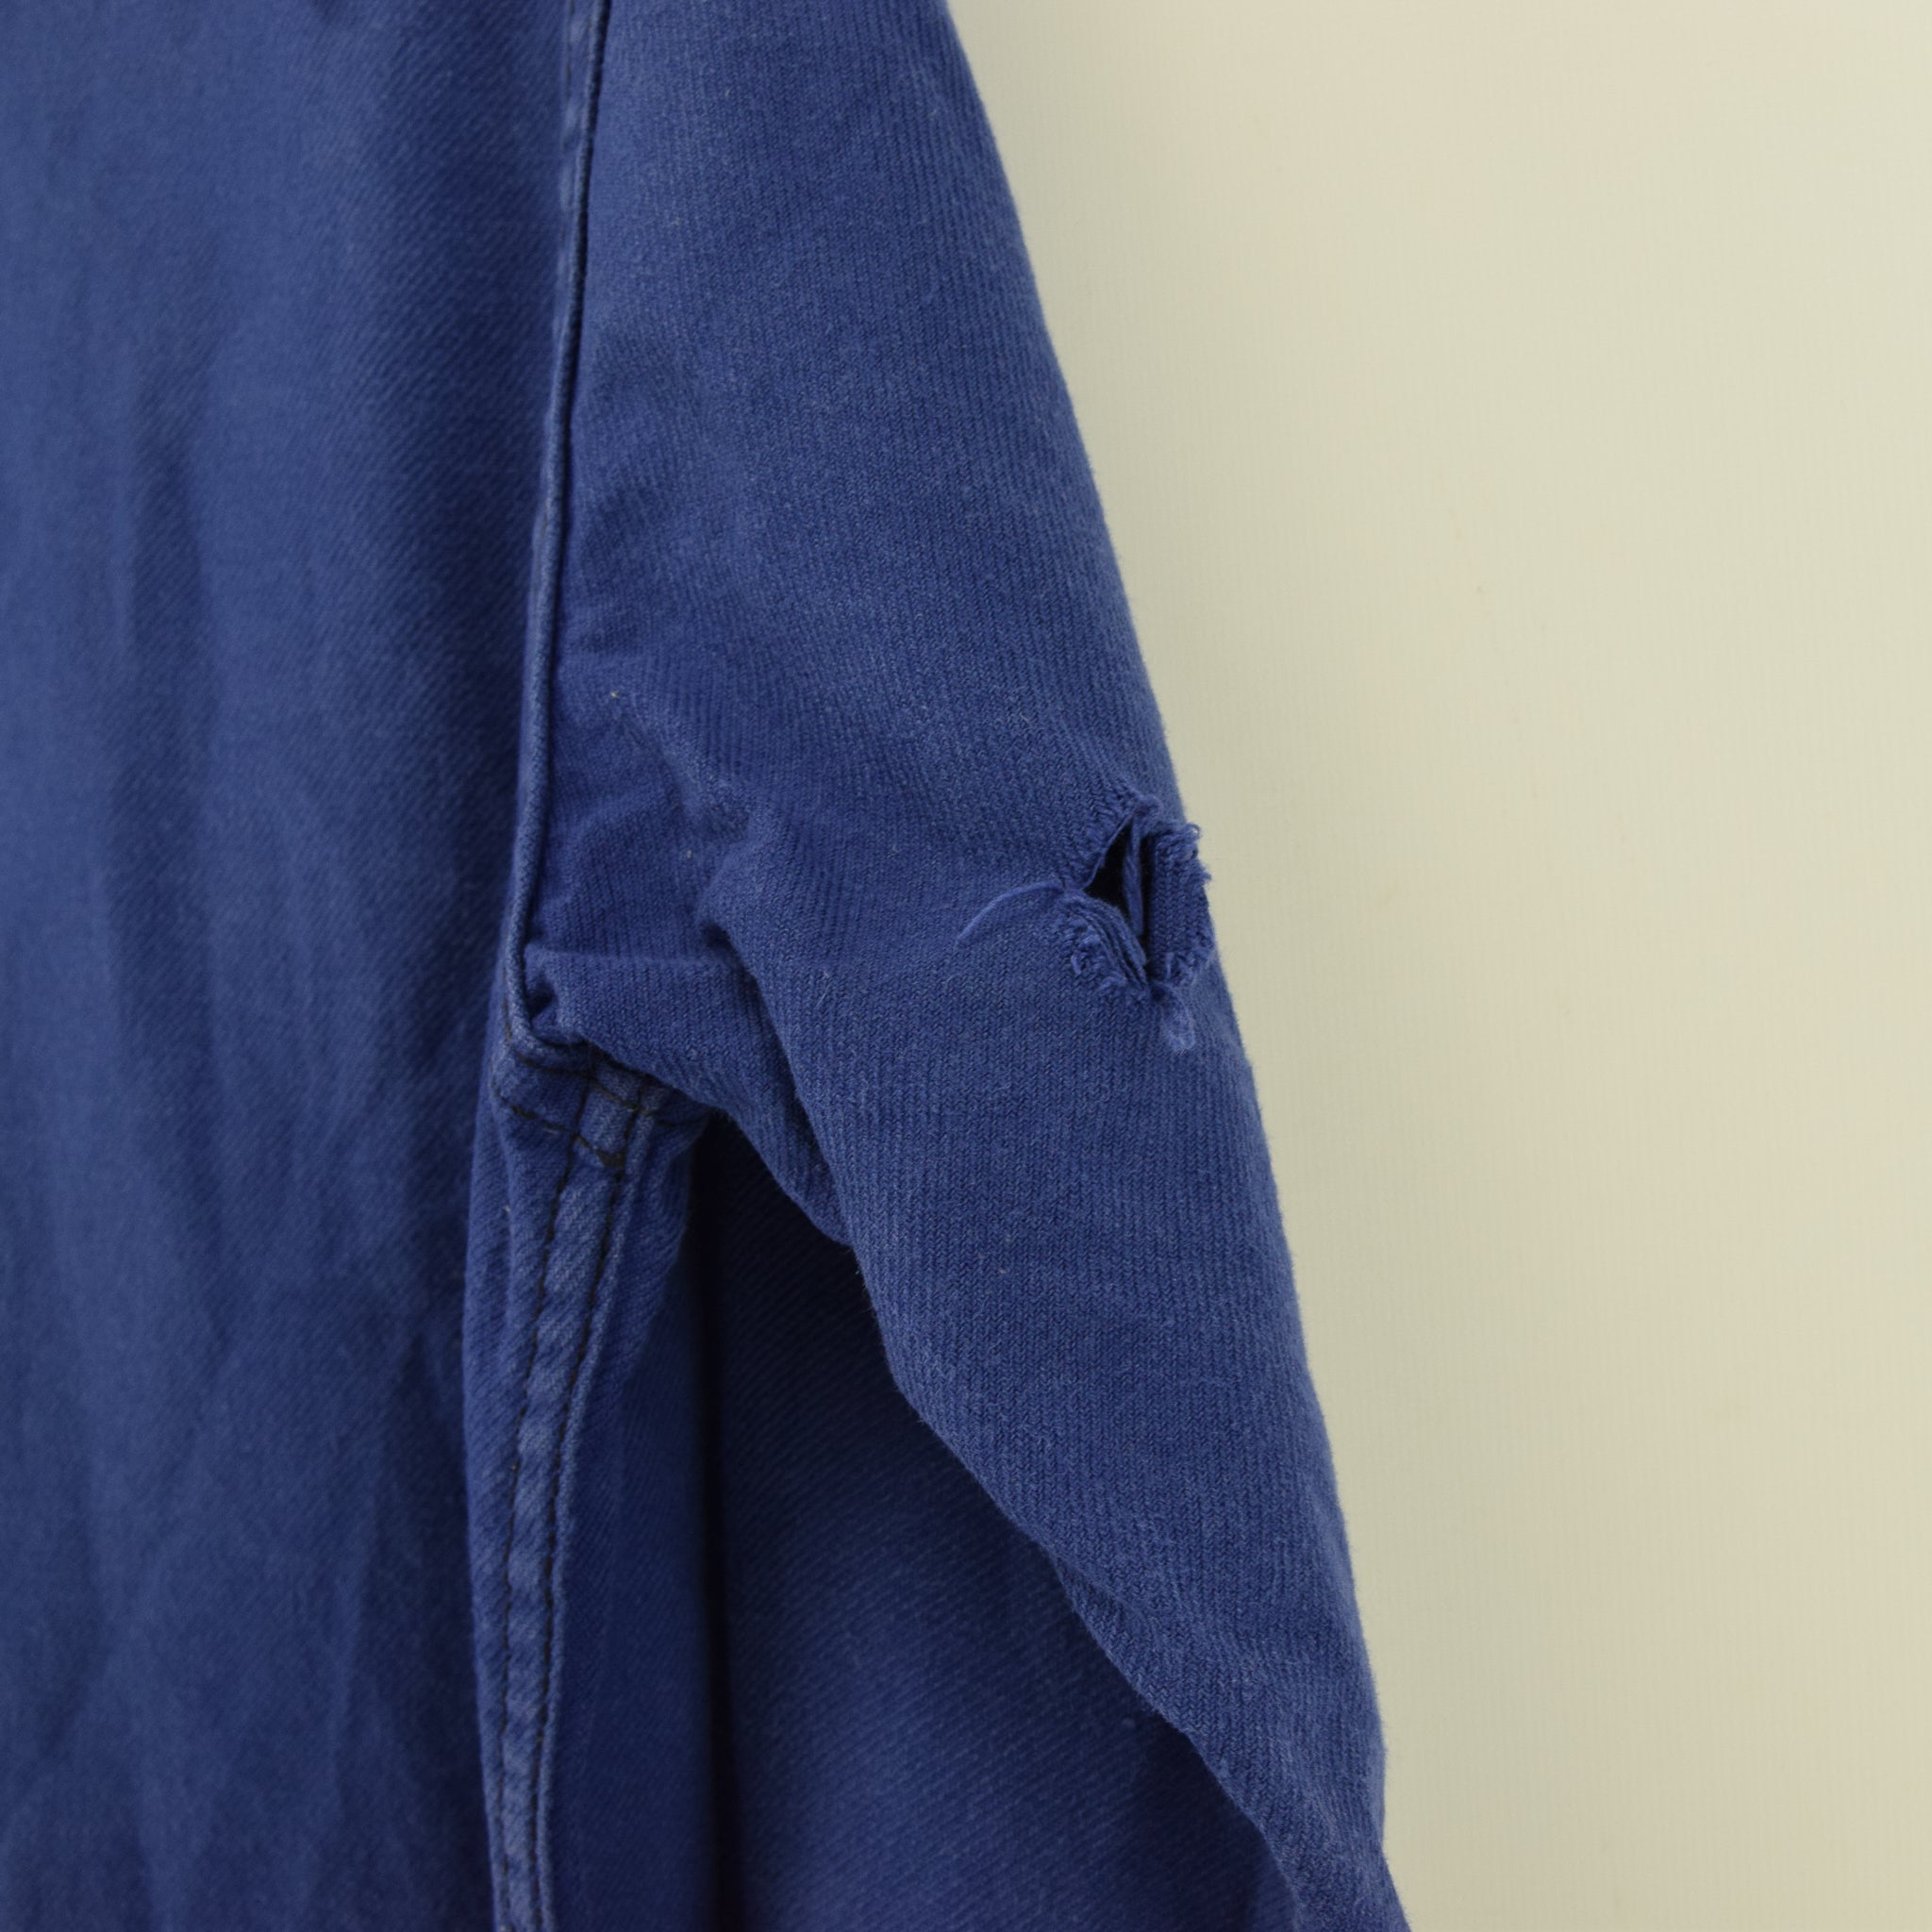 Vintage Washed Blue French Worker Sanforized Cotton Chore Jacket M arm